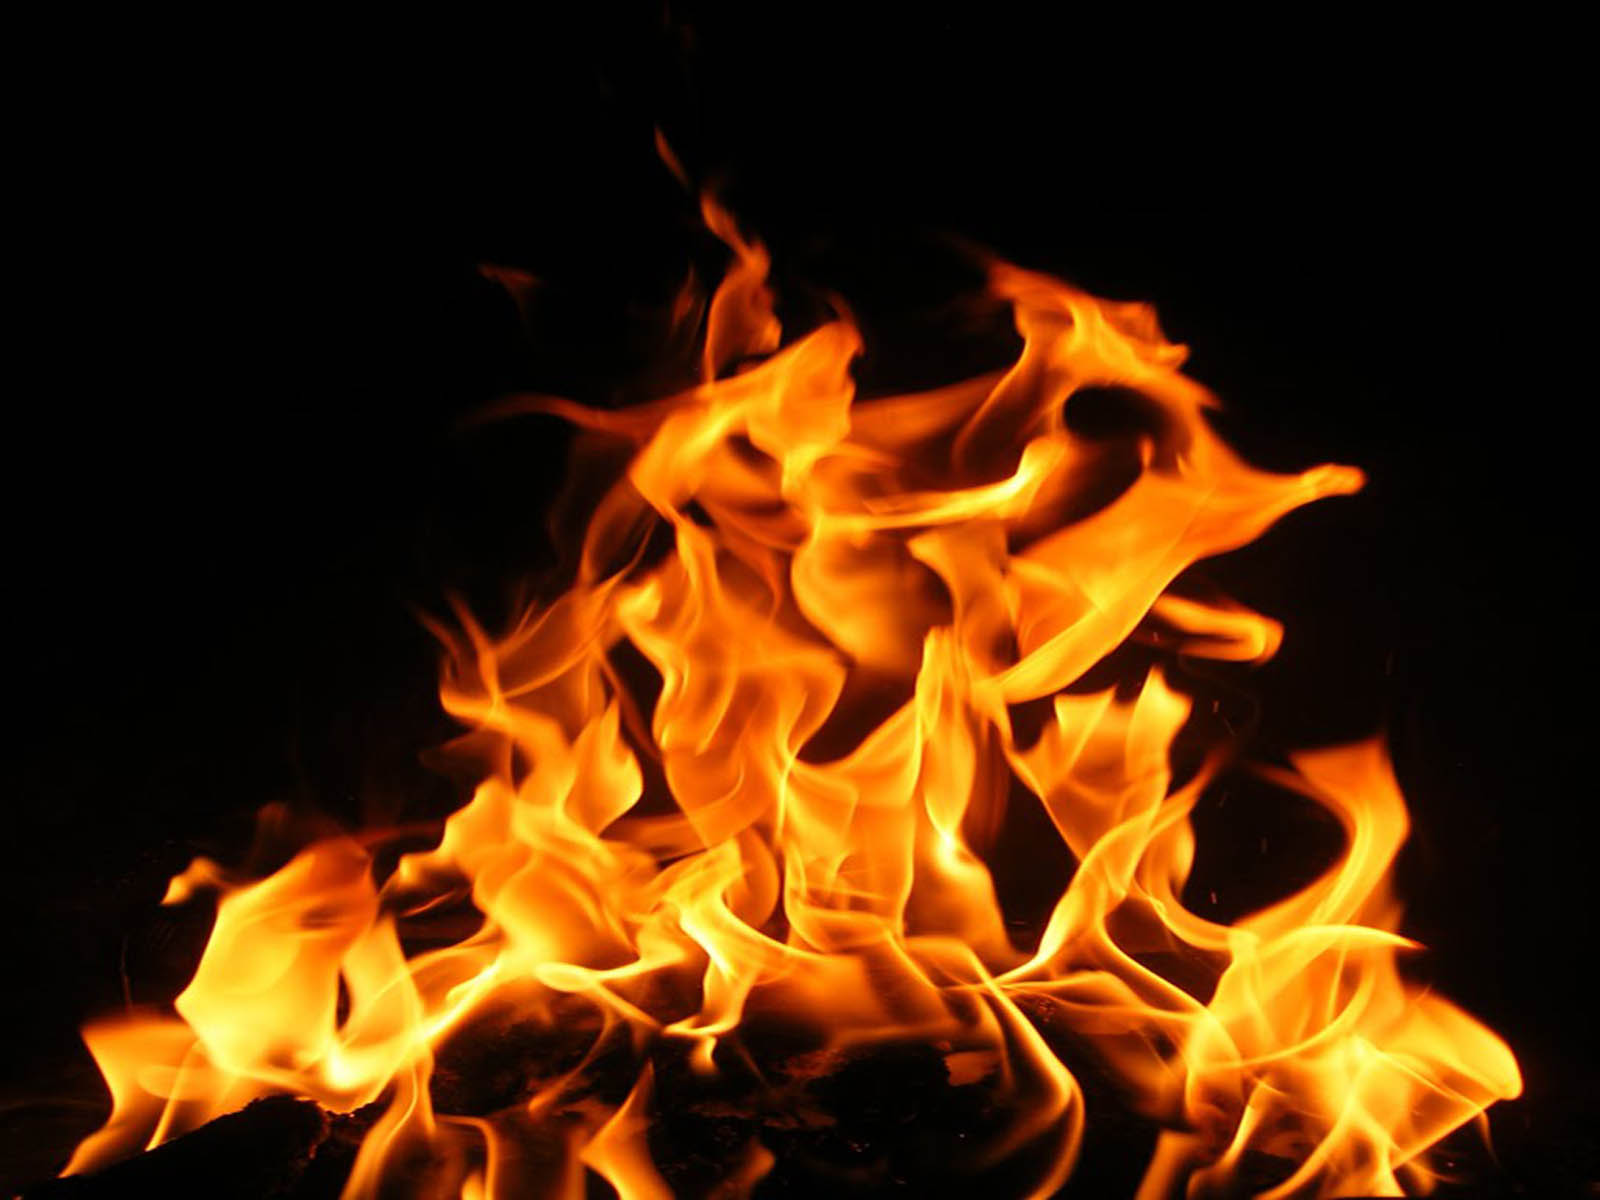 Fire Flames Wallpaper 192.43 Kb